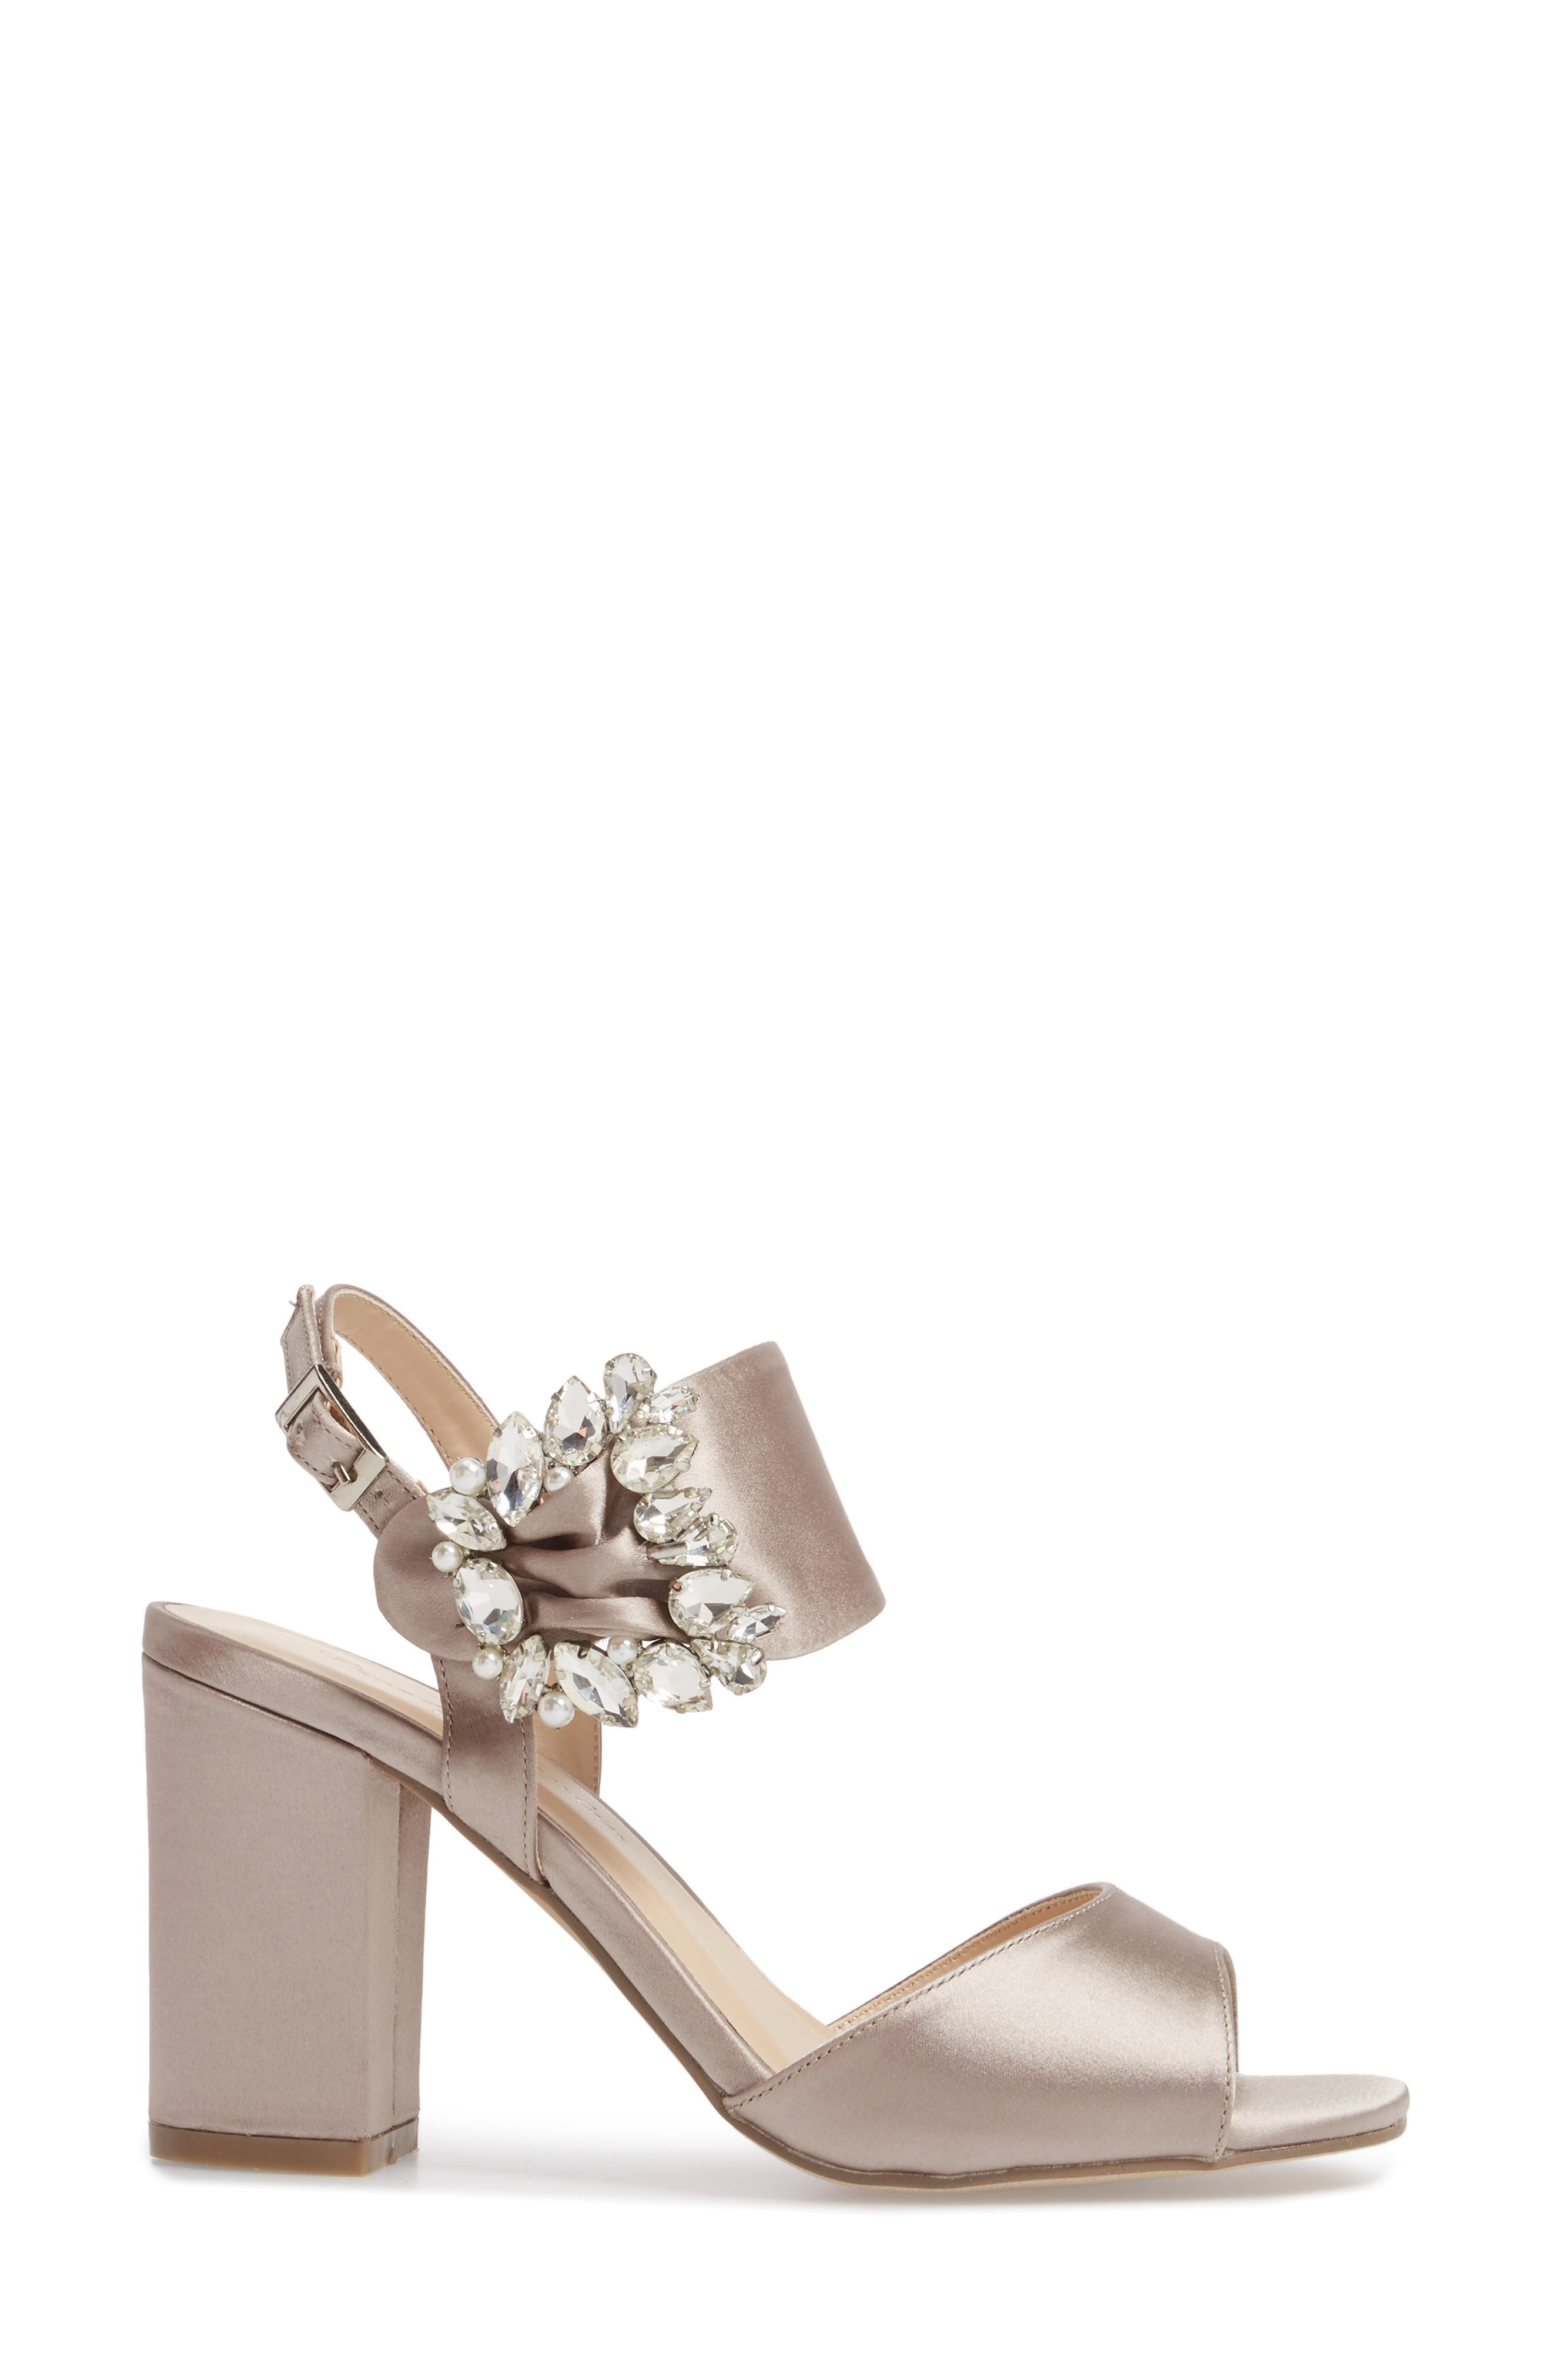 Manhattan Embellished Sandal,                             Alternate thumbnail 3, color,                             TAUPE SATIN